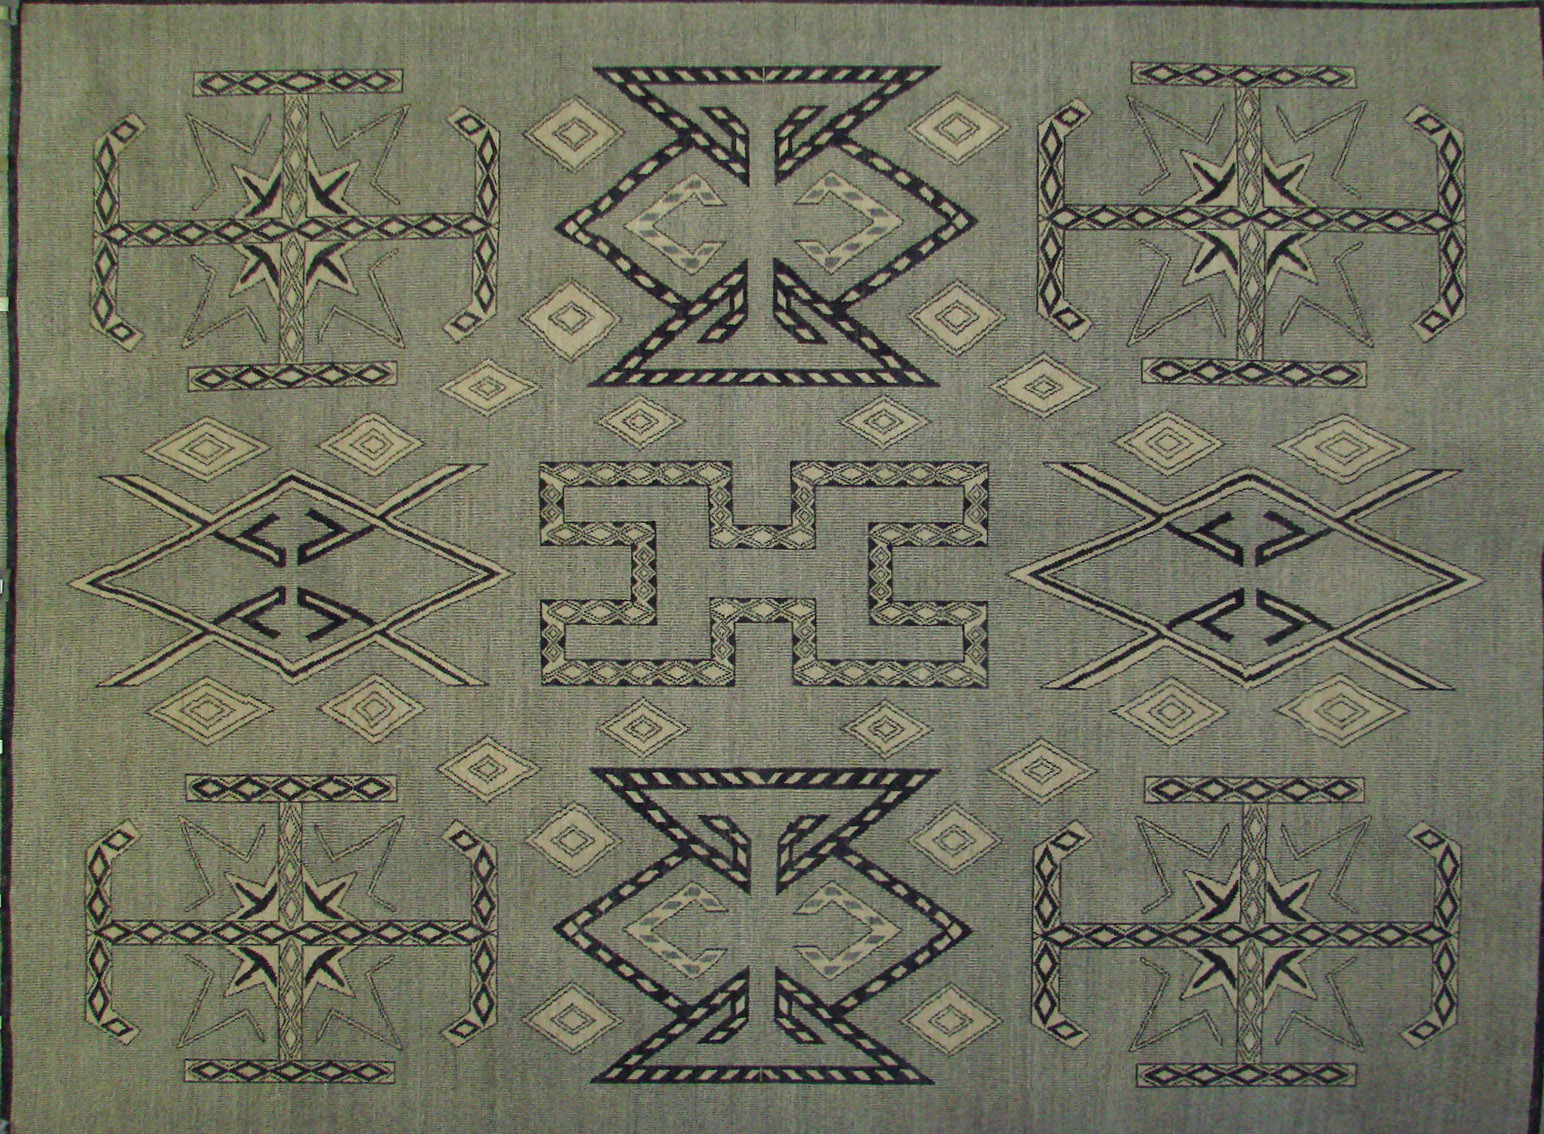 9x12 Contemporary Hand Knotted Wool Area Rug - MR021696